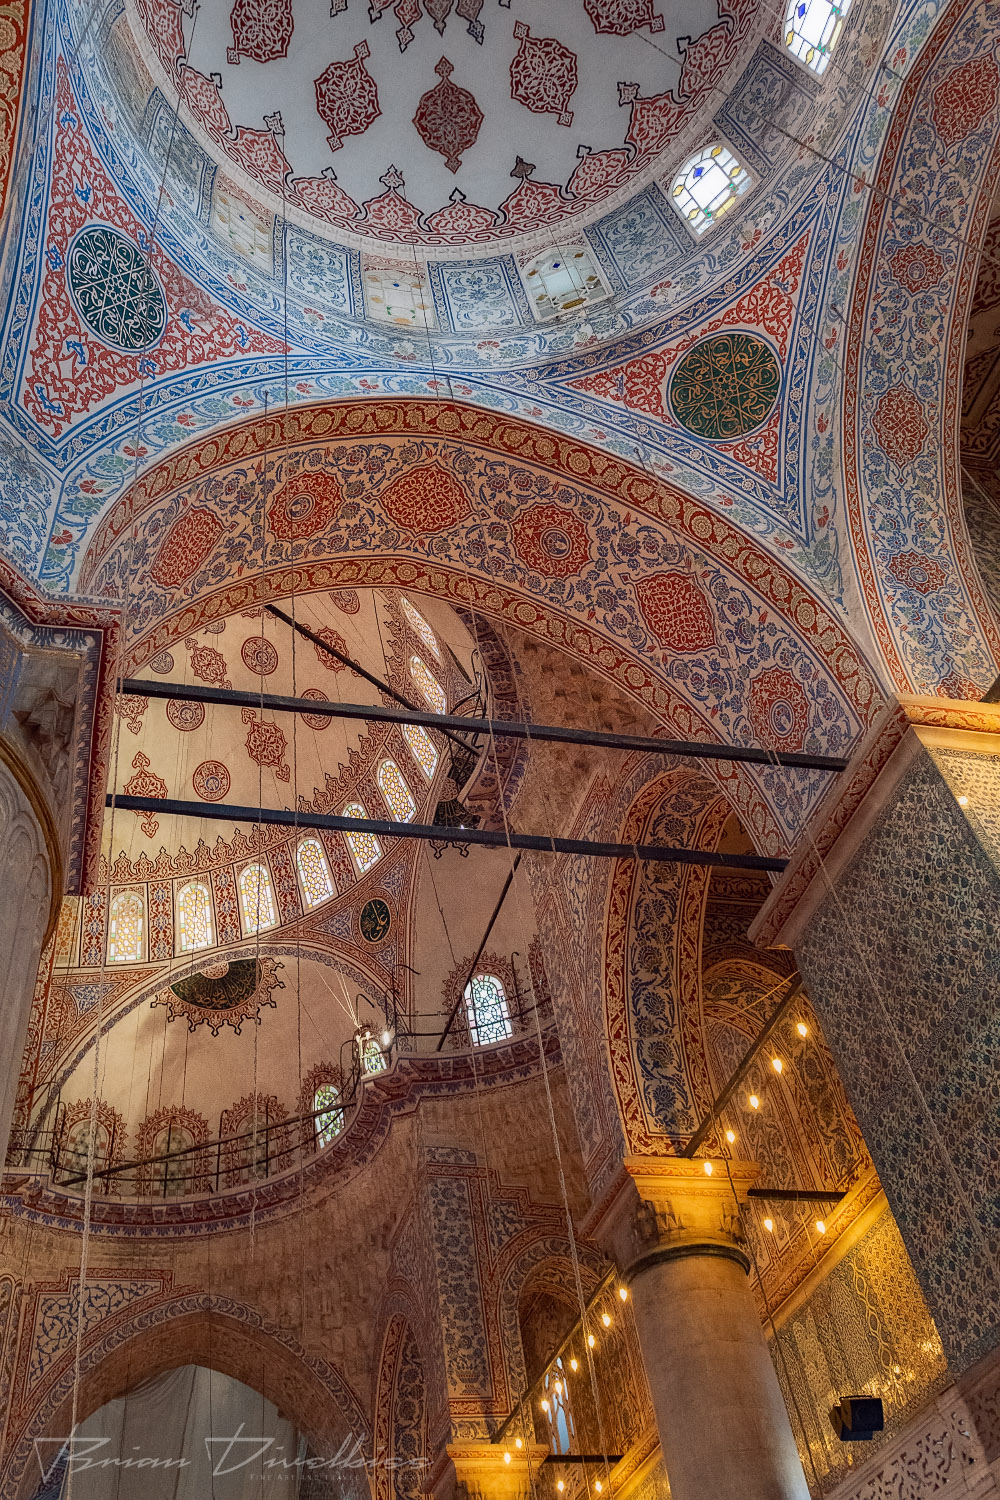 Domes of the Blue Mosque in Istanbul, Turkey from below.